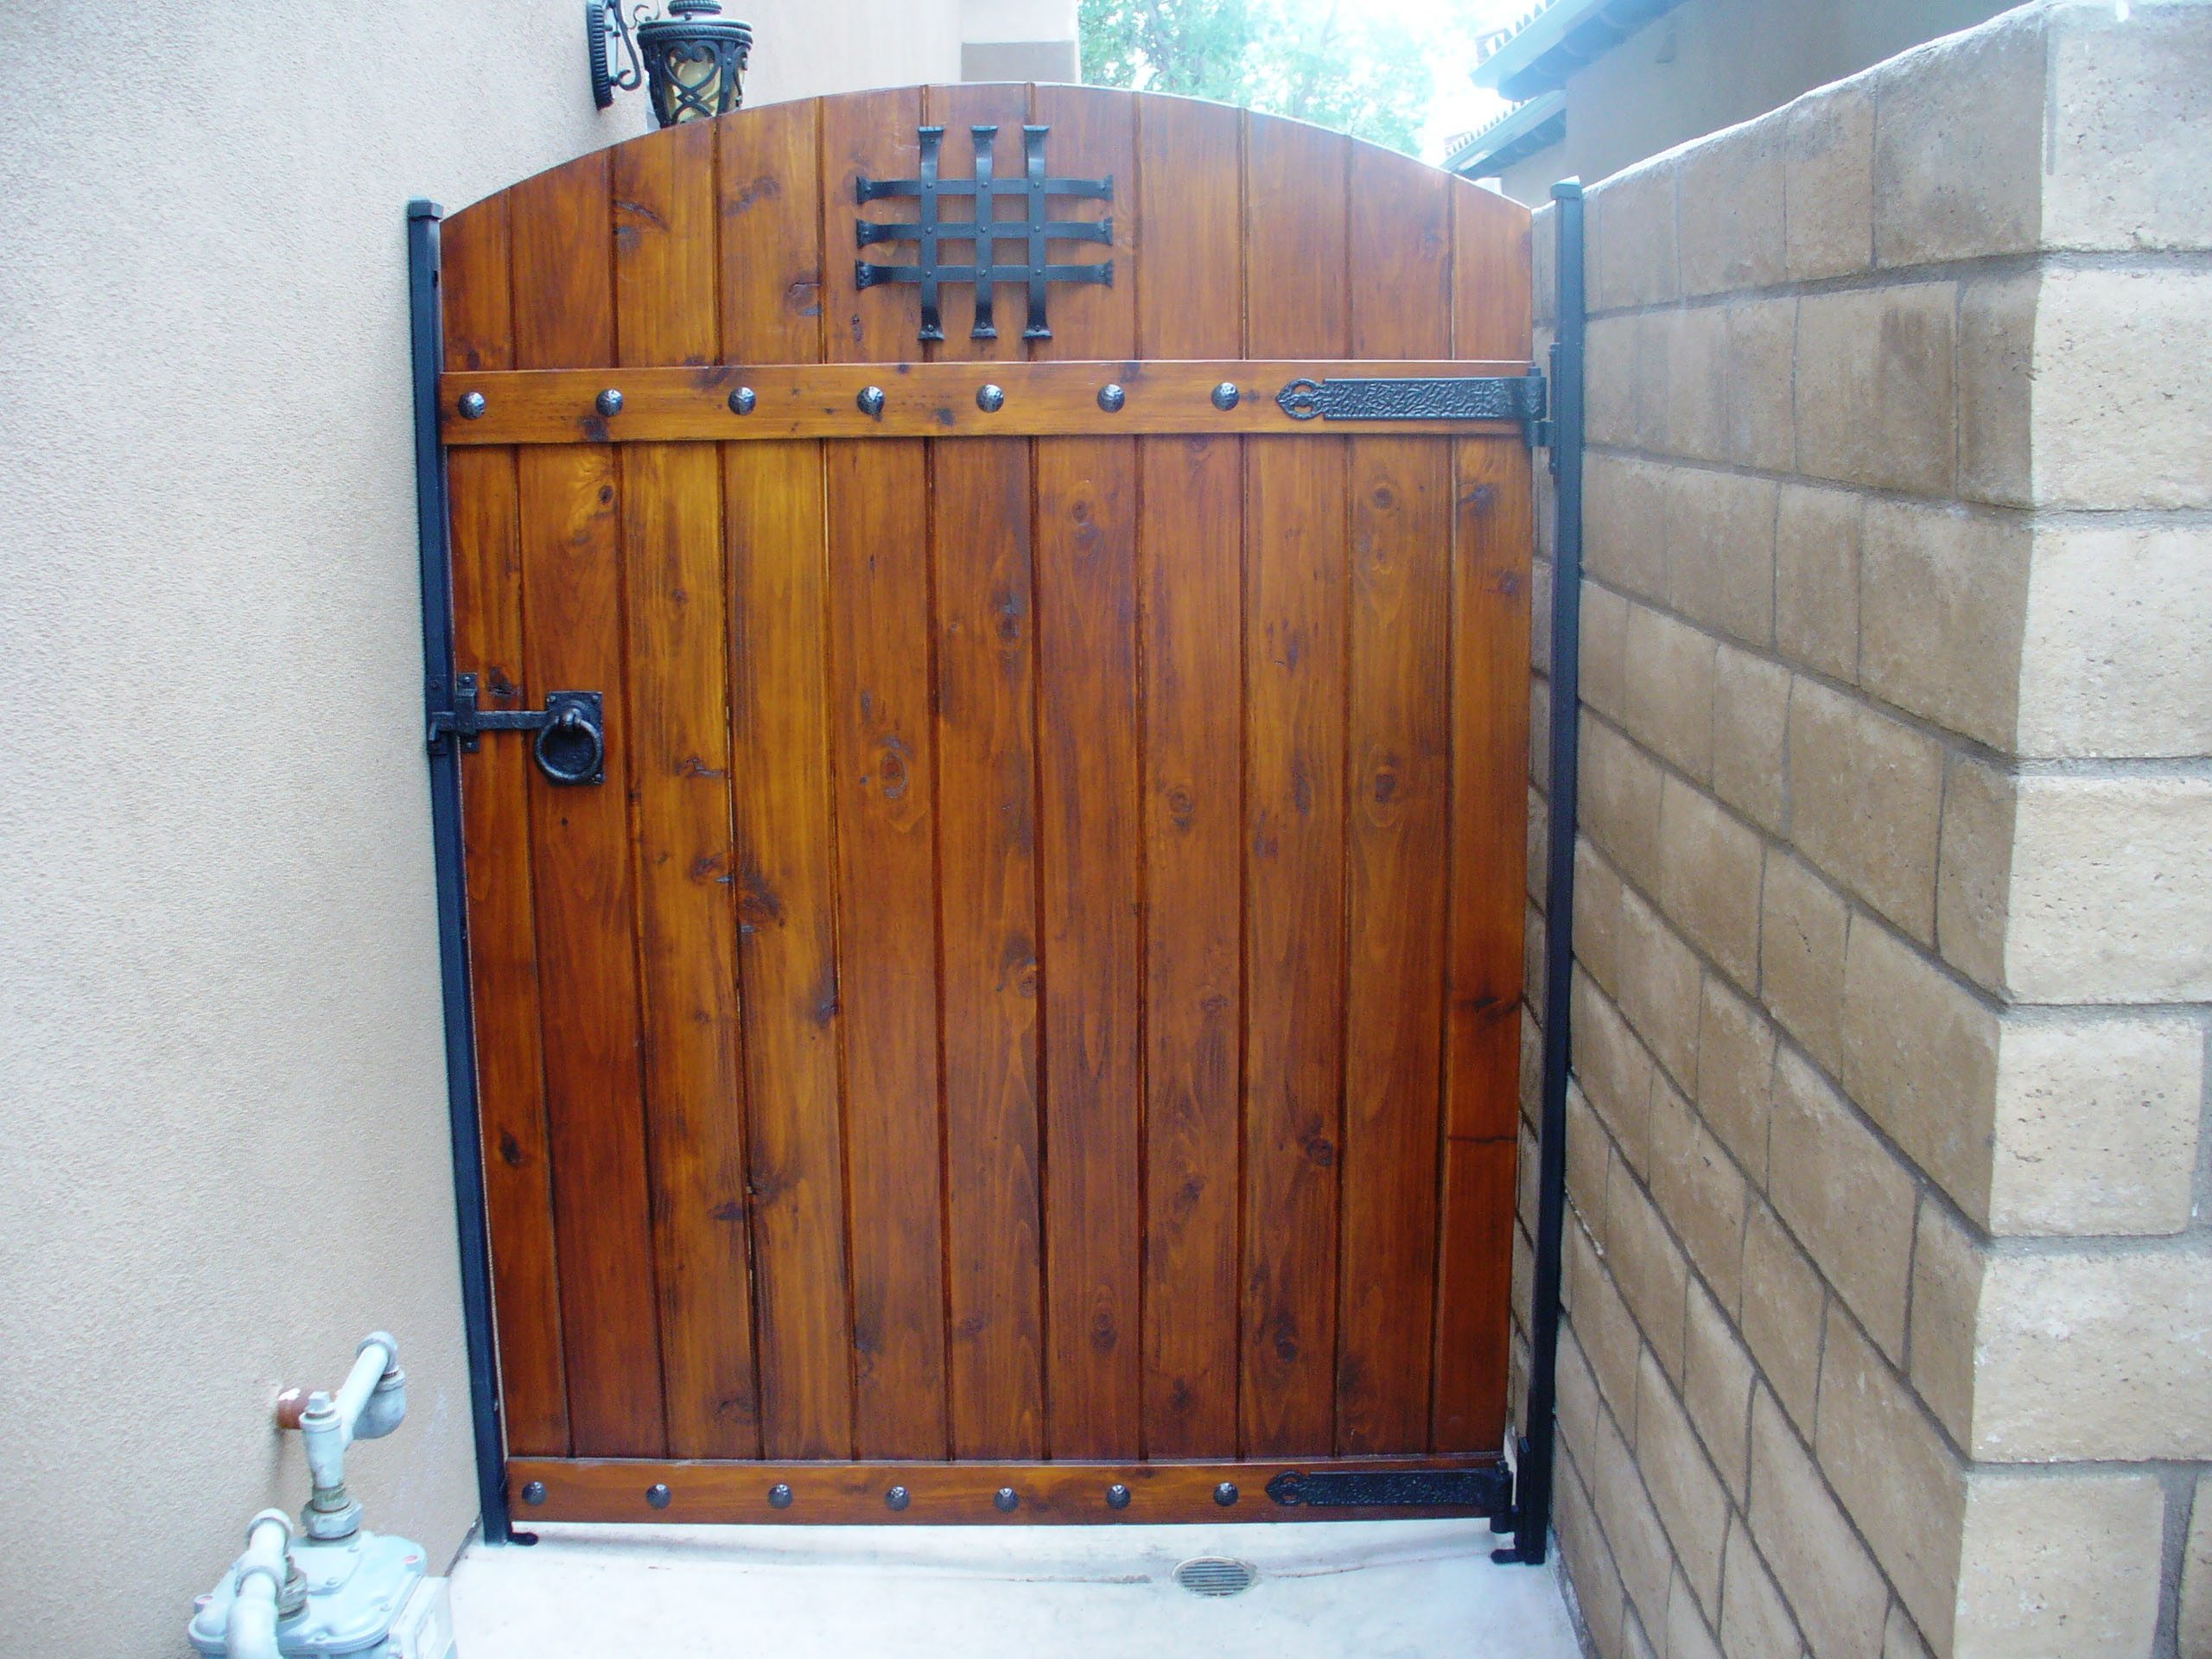 Pedestrian side gate with gate designs including a speak easy, ring pull / lever, clavos and strap hinges.